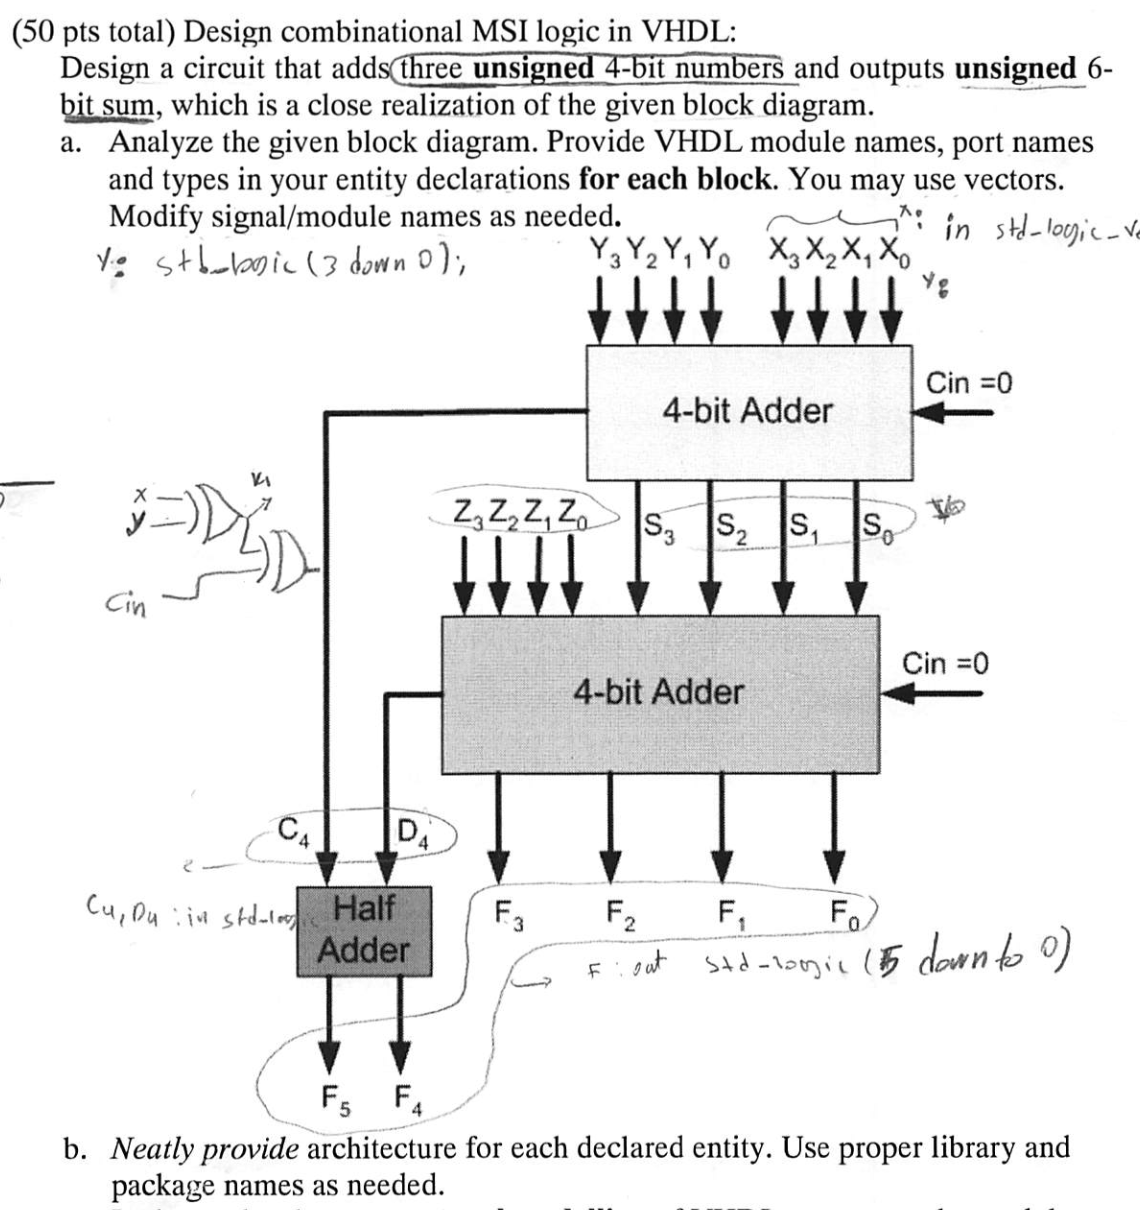 hight resolution of  image for 50 pts total design combinational msi logic in vhdl design a